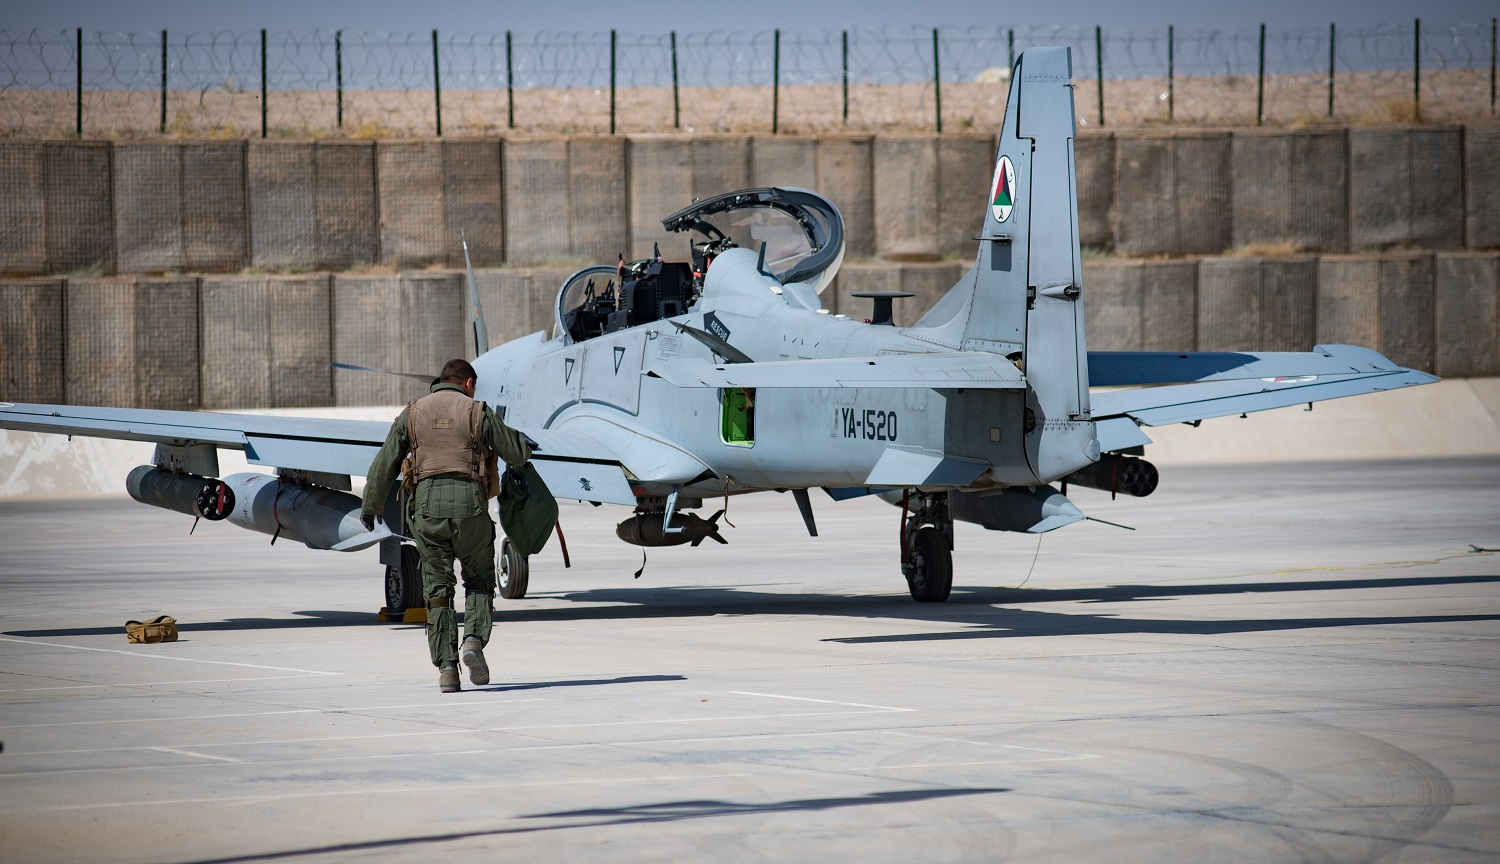 New A-29 order brightens aircraft's prospects in Middle East